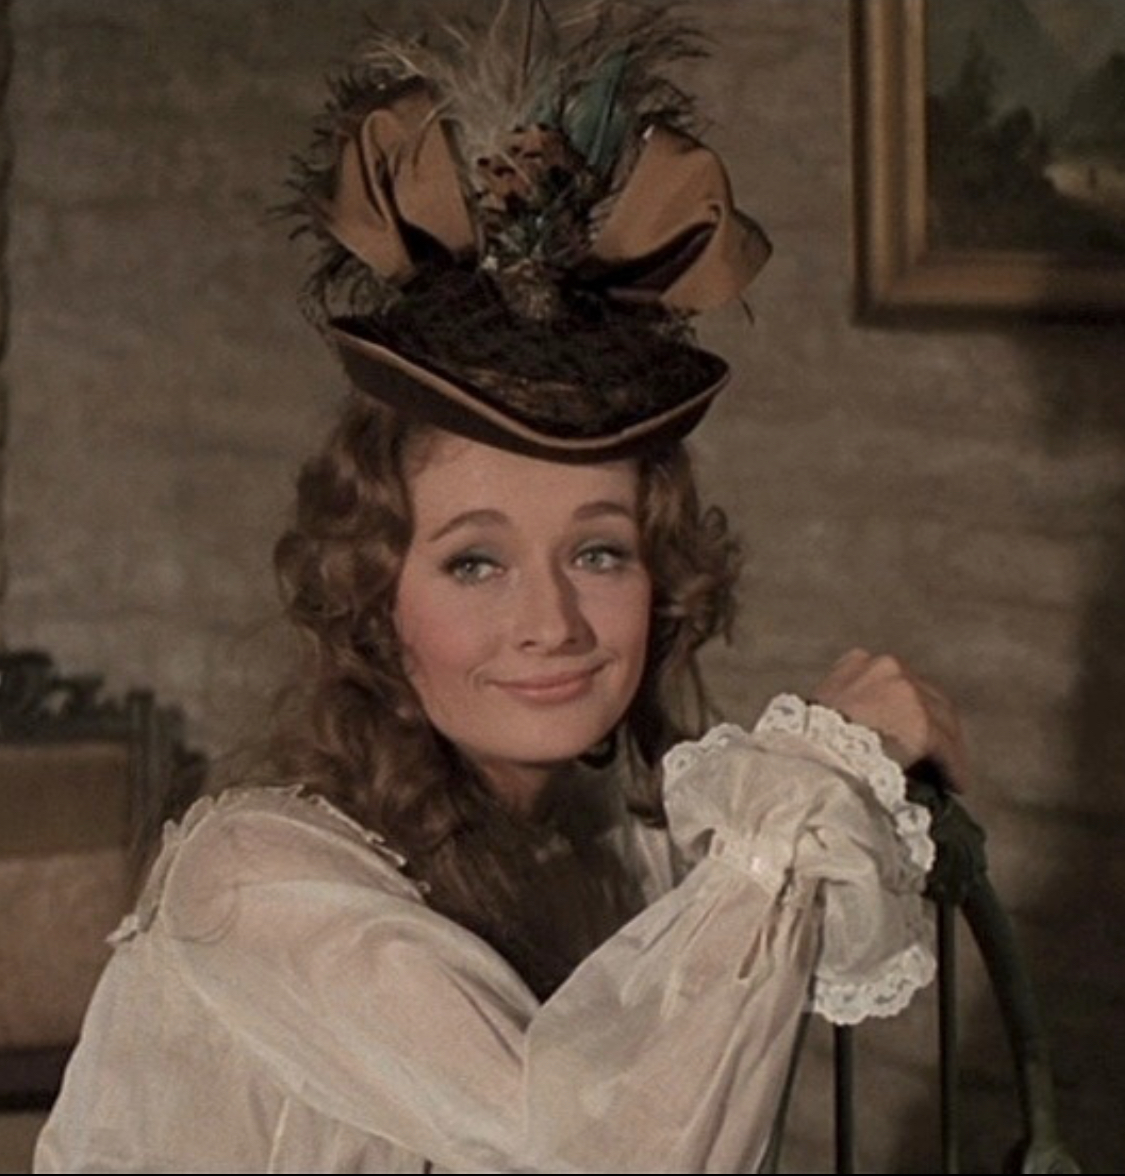 Diana Muldaur in One More Train to Rob (1971)